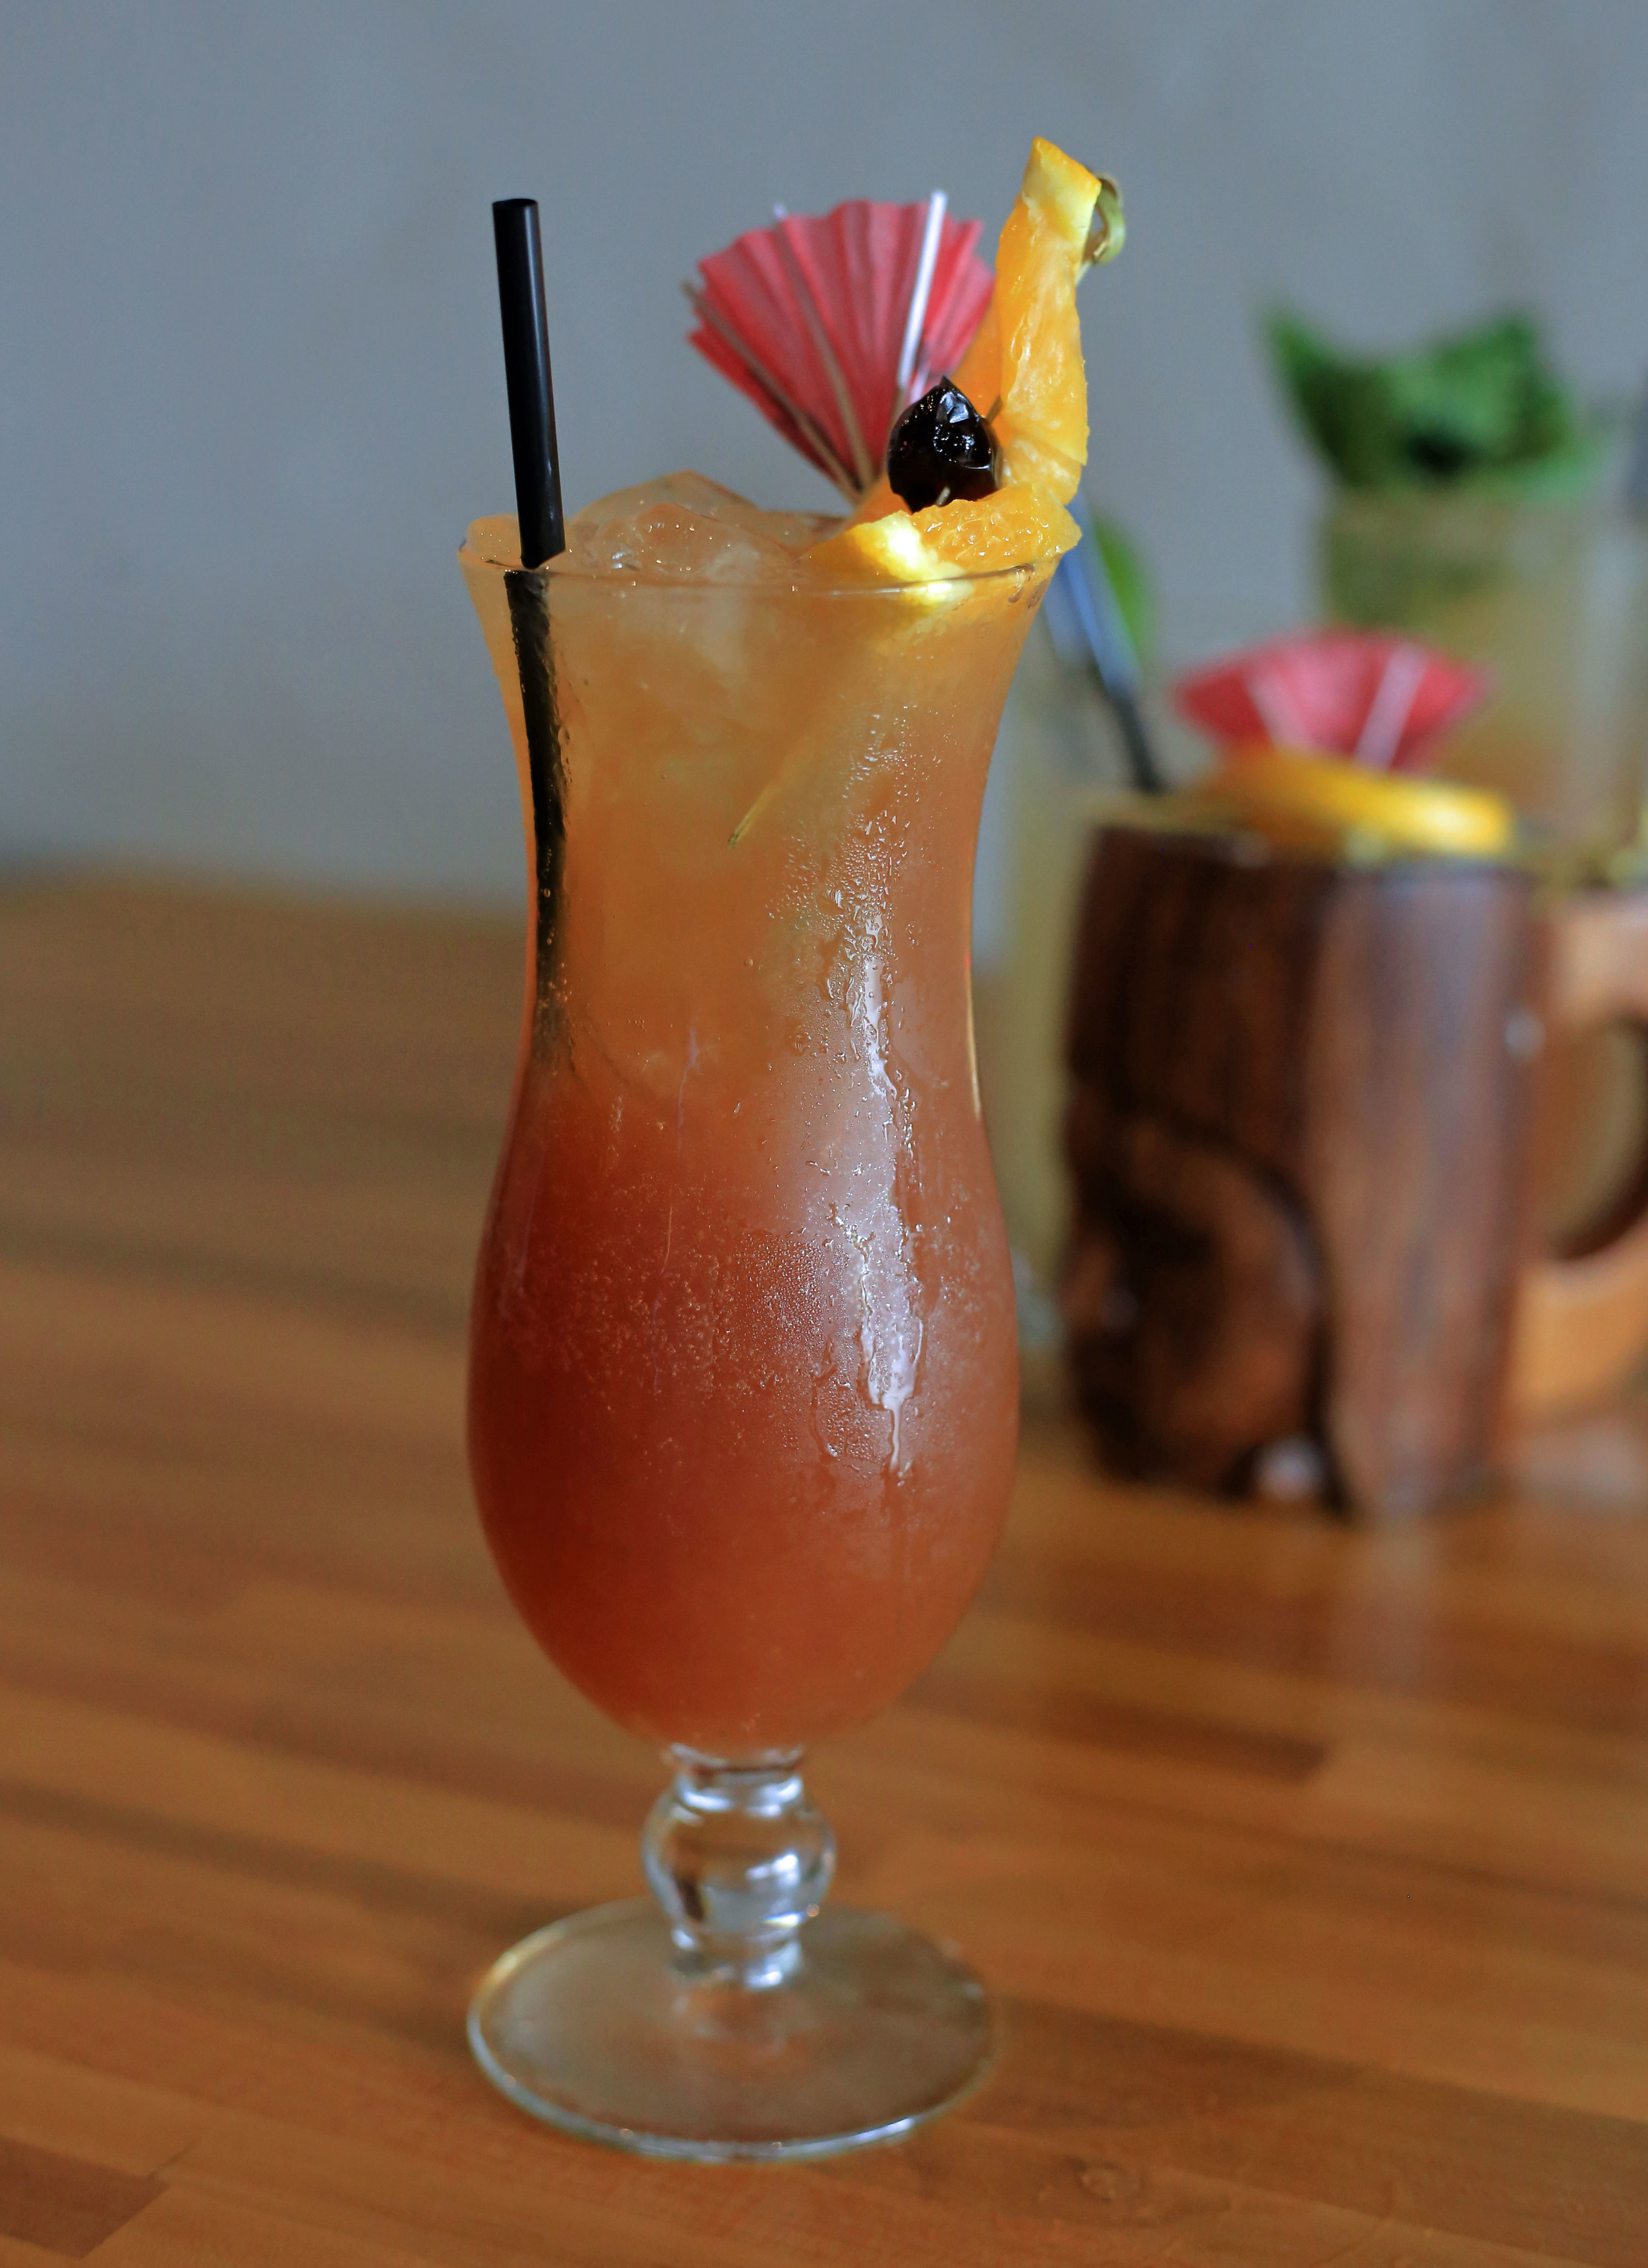 Hurricane - Passion fruit, simple syrup, grenadine, lemon juice, dark Jamacian rum. Easily gone too quickly and a drink that will catch up with you fast.